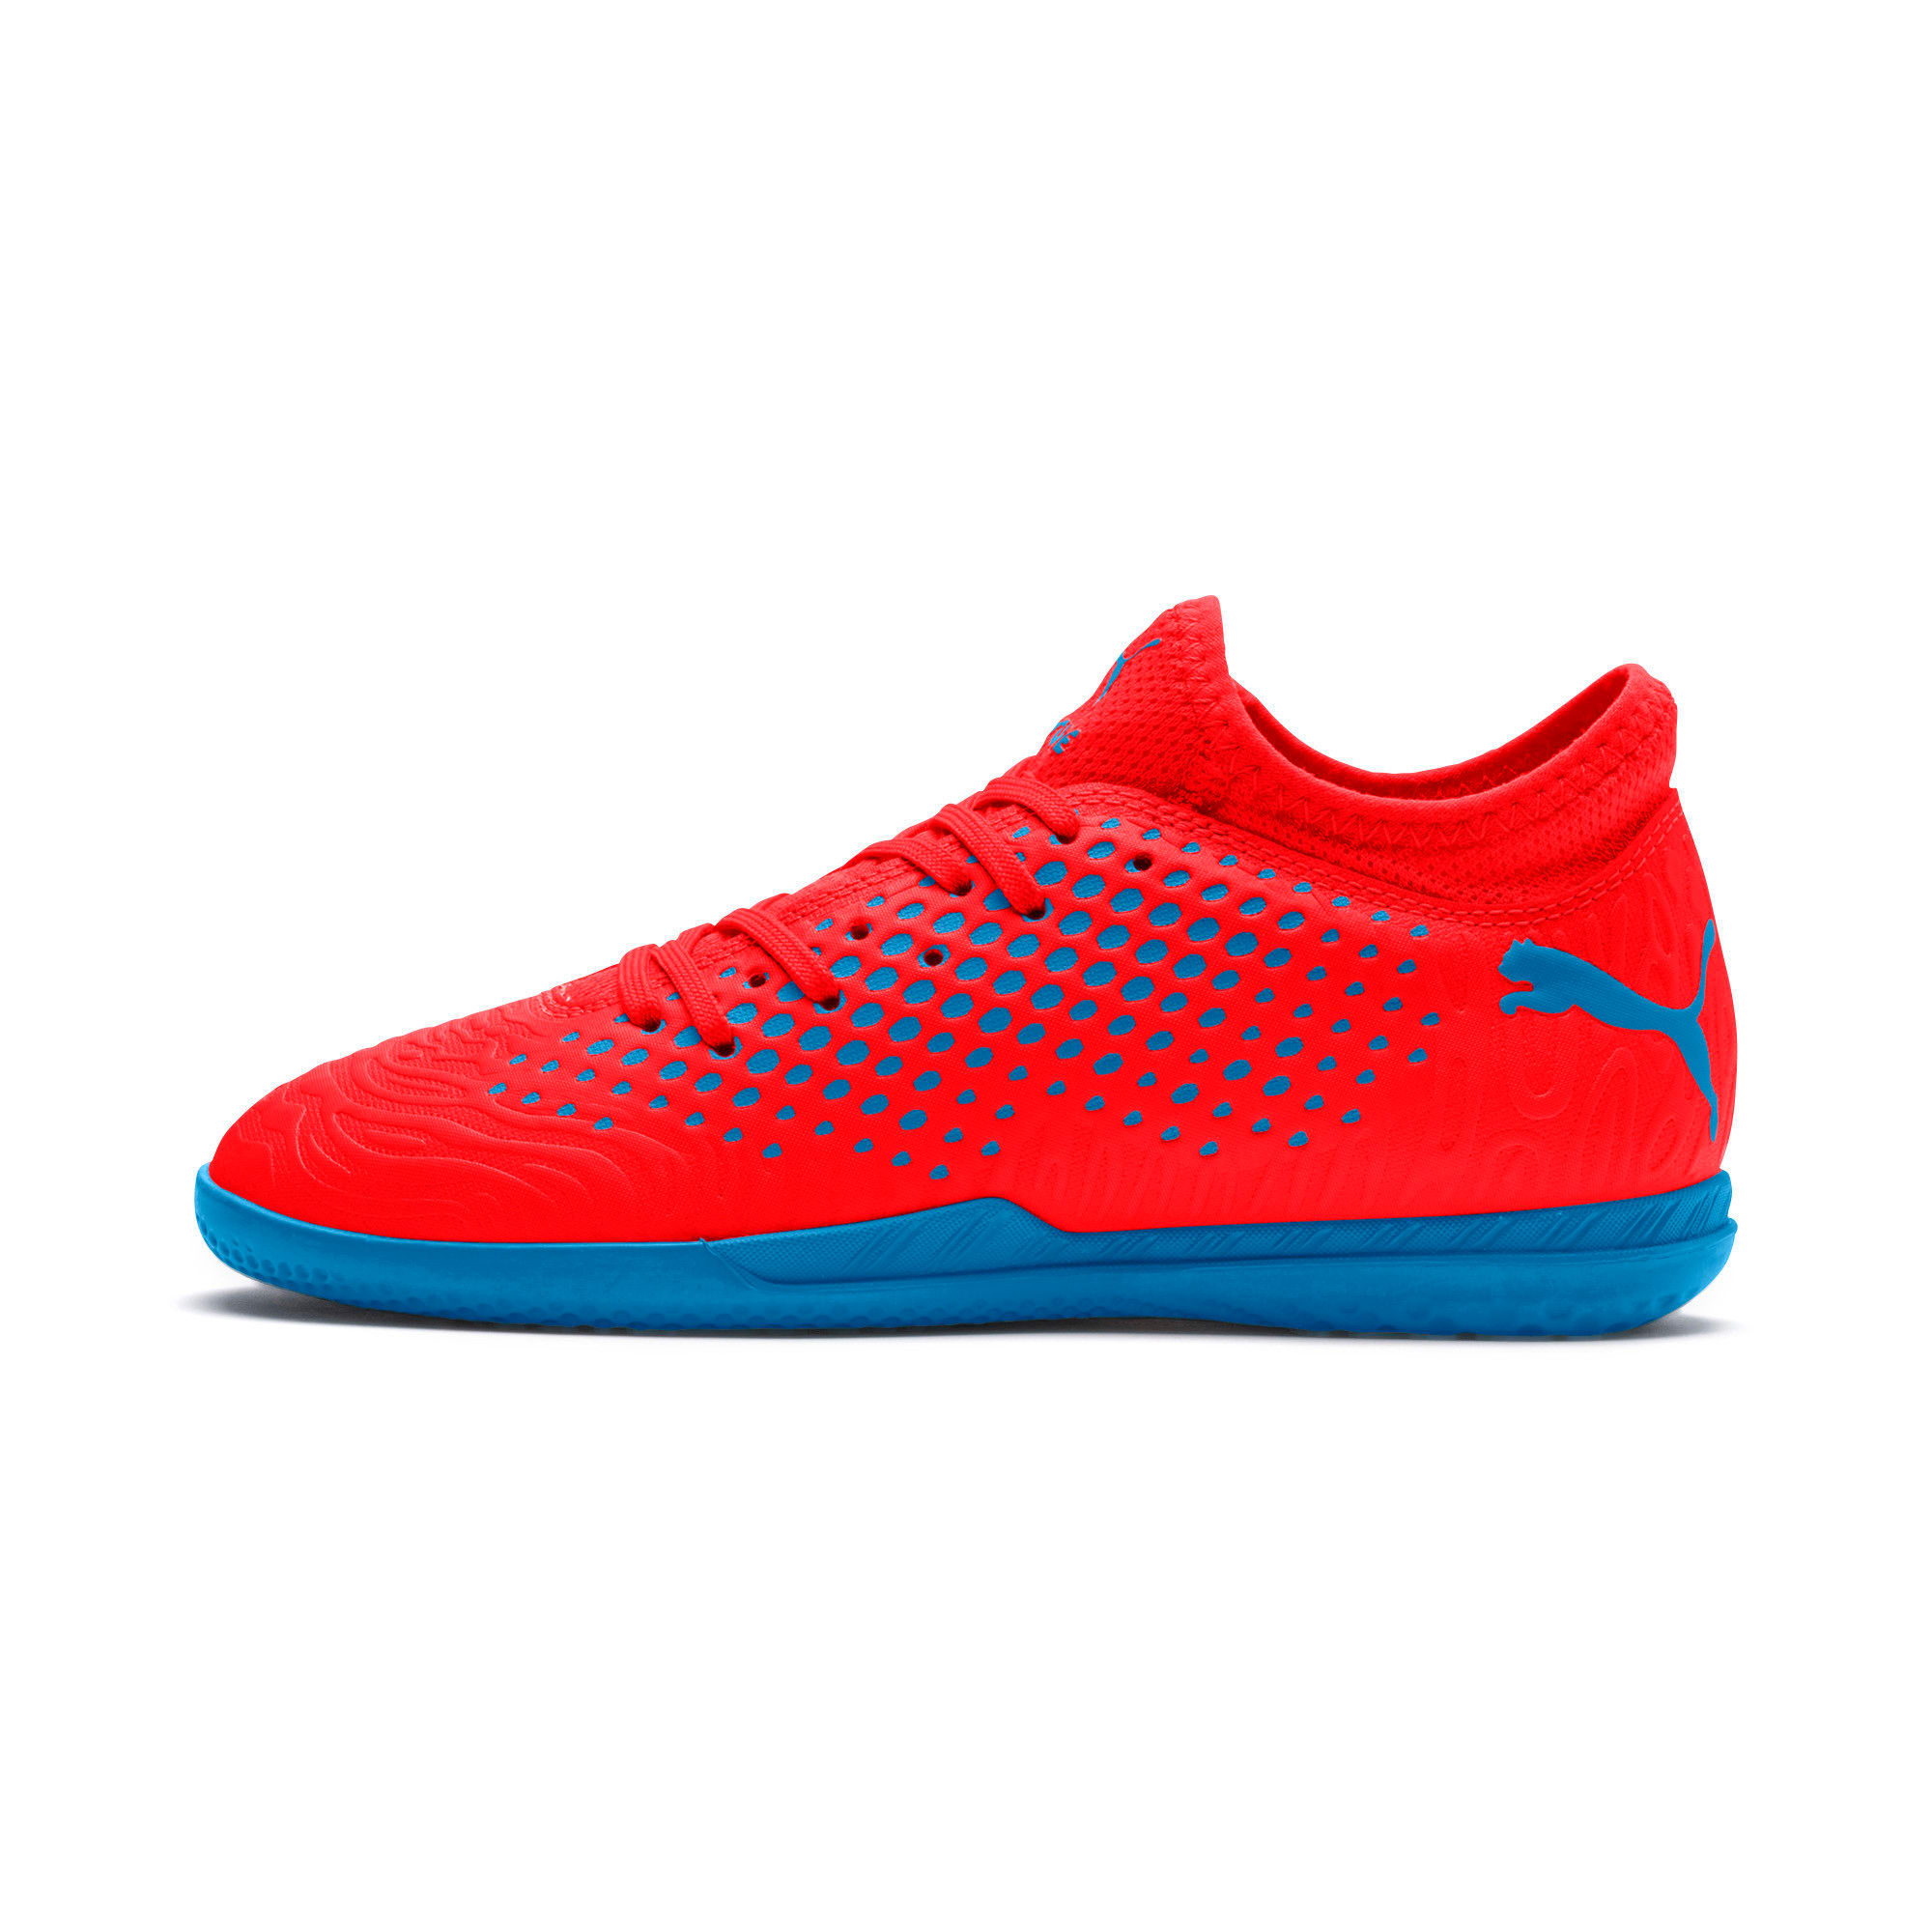 Thumbnail 1 of FUTURE 19.4 IT Soccer Shoes JR, Red Blast-Bleu Azur, medium